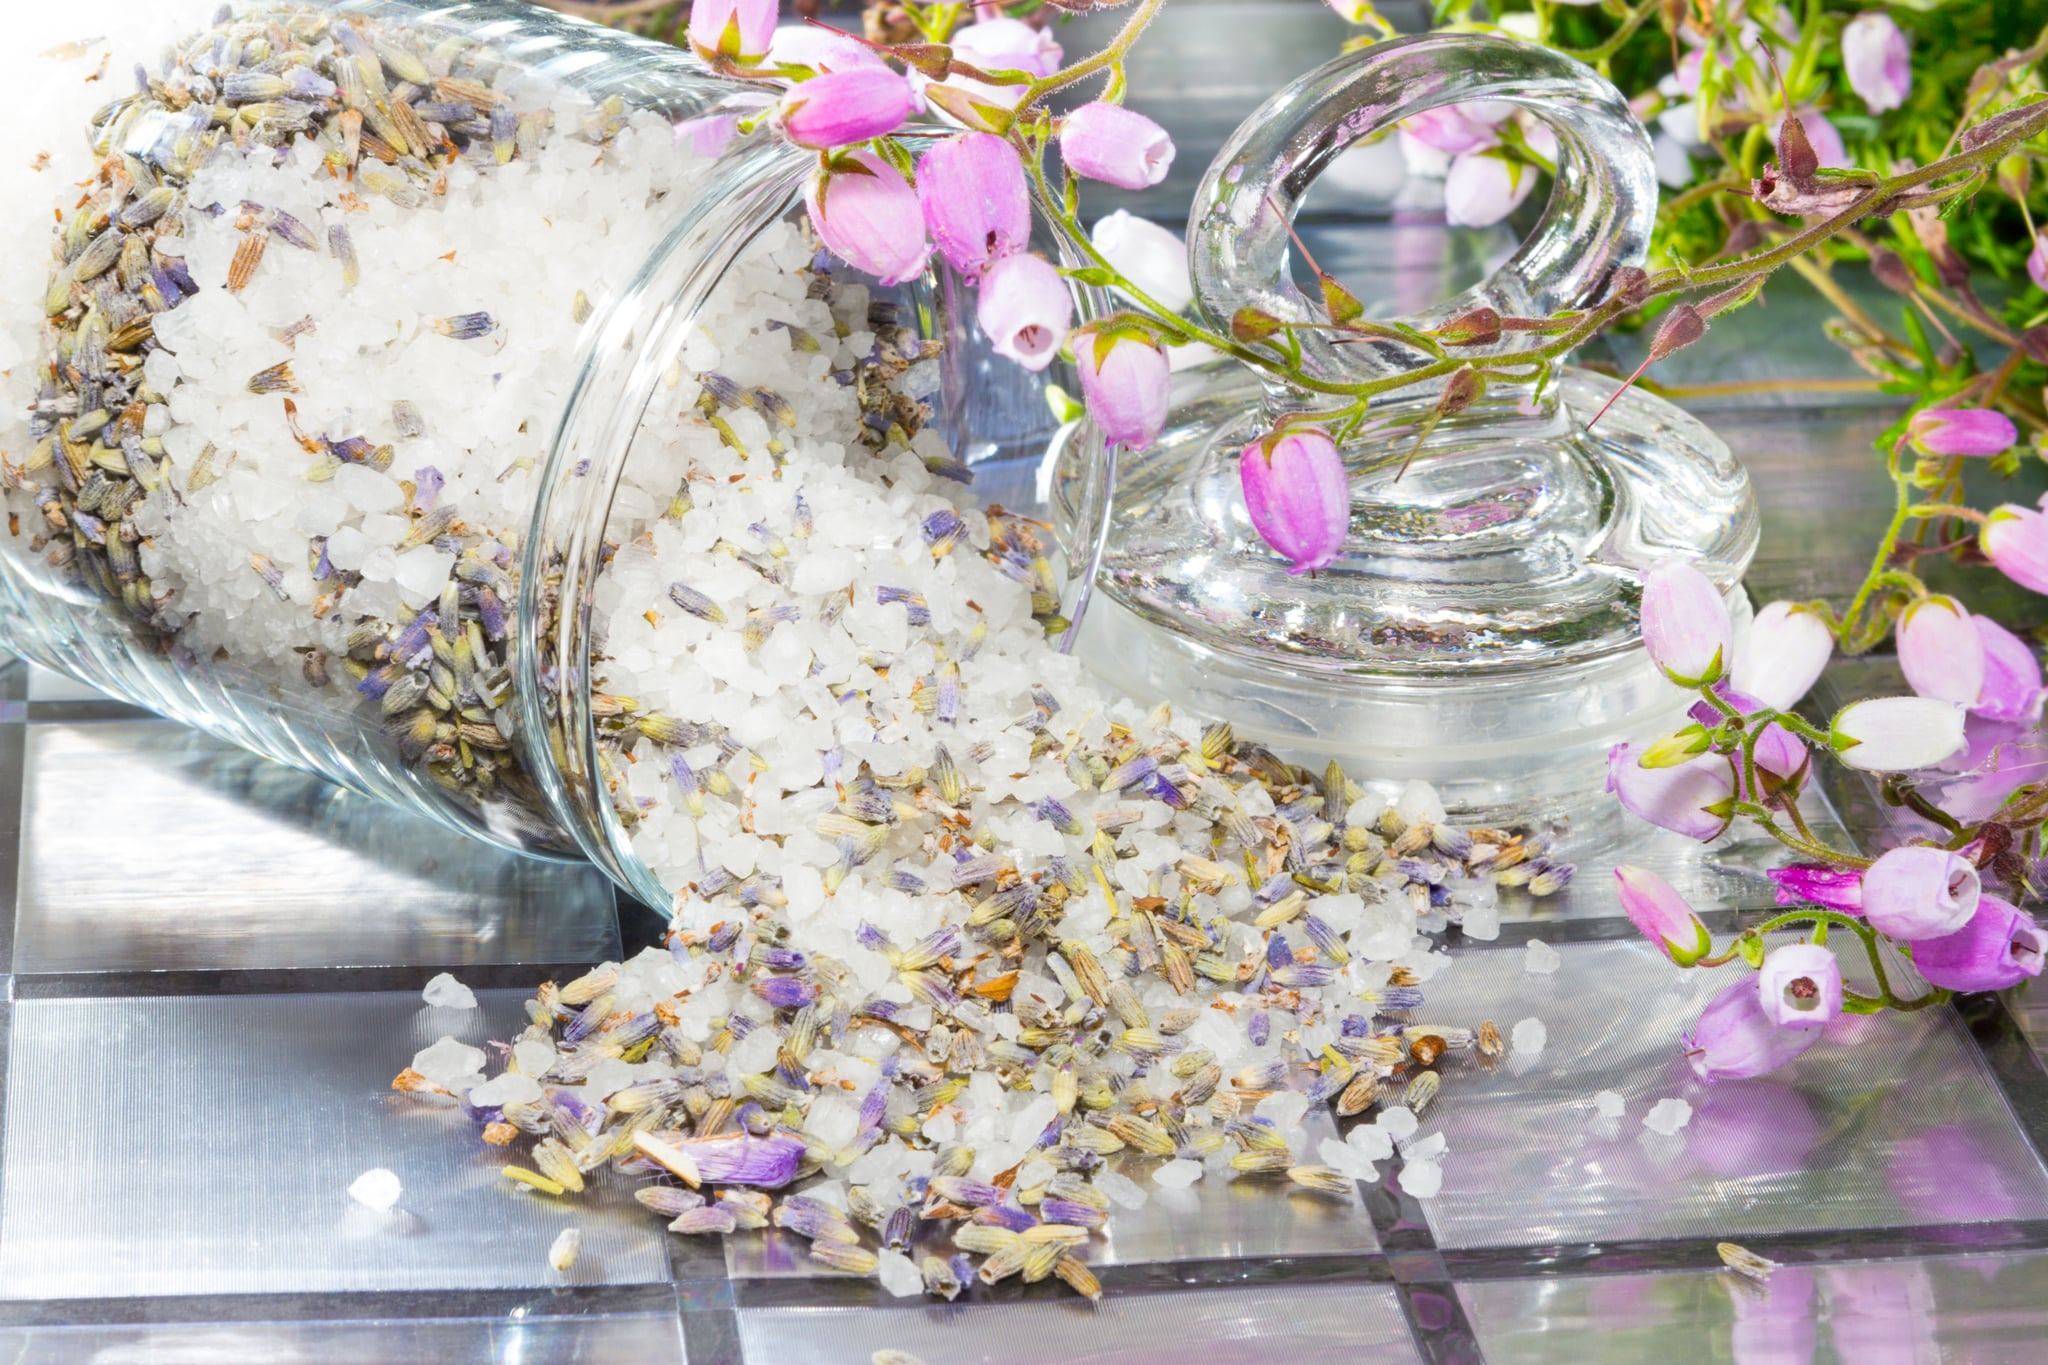 How to make homemade potpourri popsugar smart living when your sweet bouquet of flowers isnt as fresh as it used to be instead of relinquishing to the trash give those flowers new life as pretty potpourri izmirmasajfo Choice Image